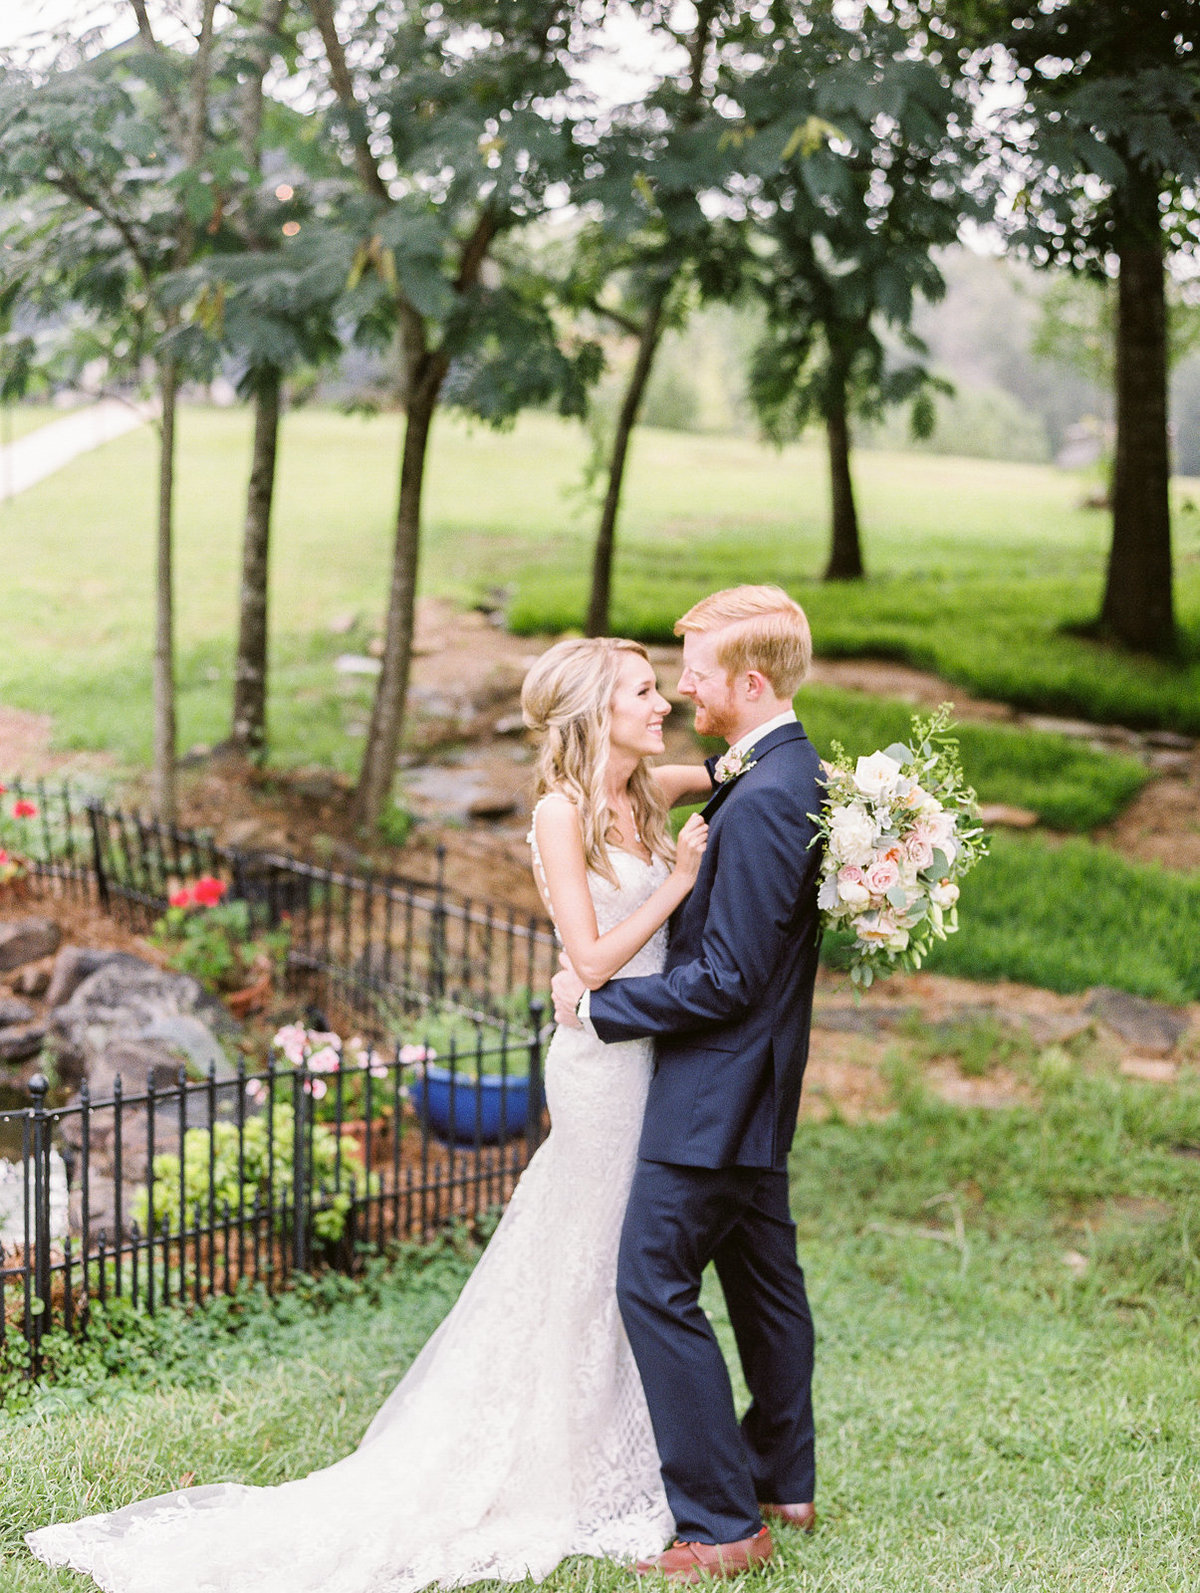 Sydney & William_Lindsay Ott Photography-128